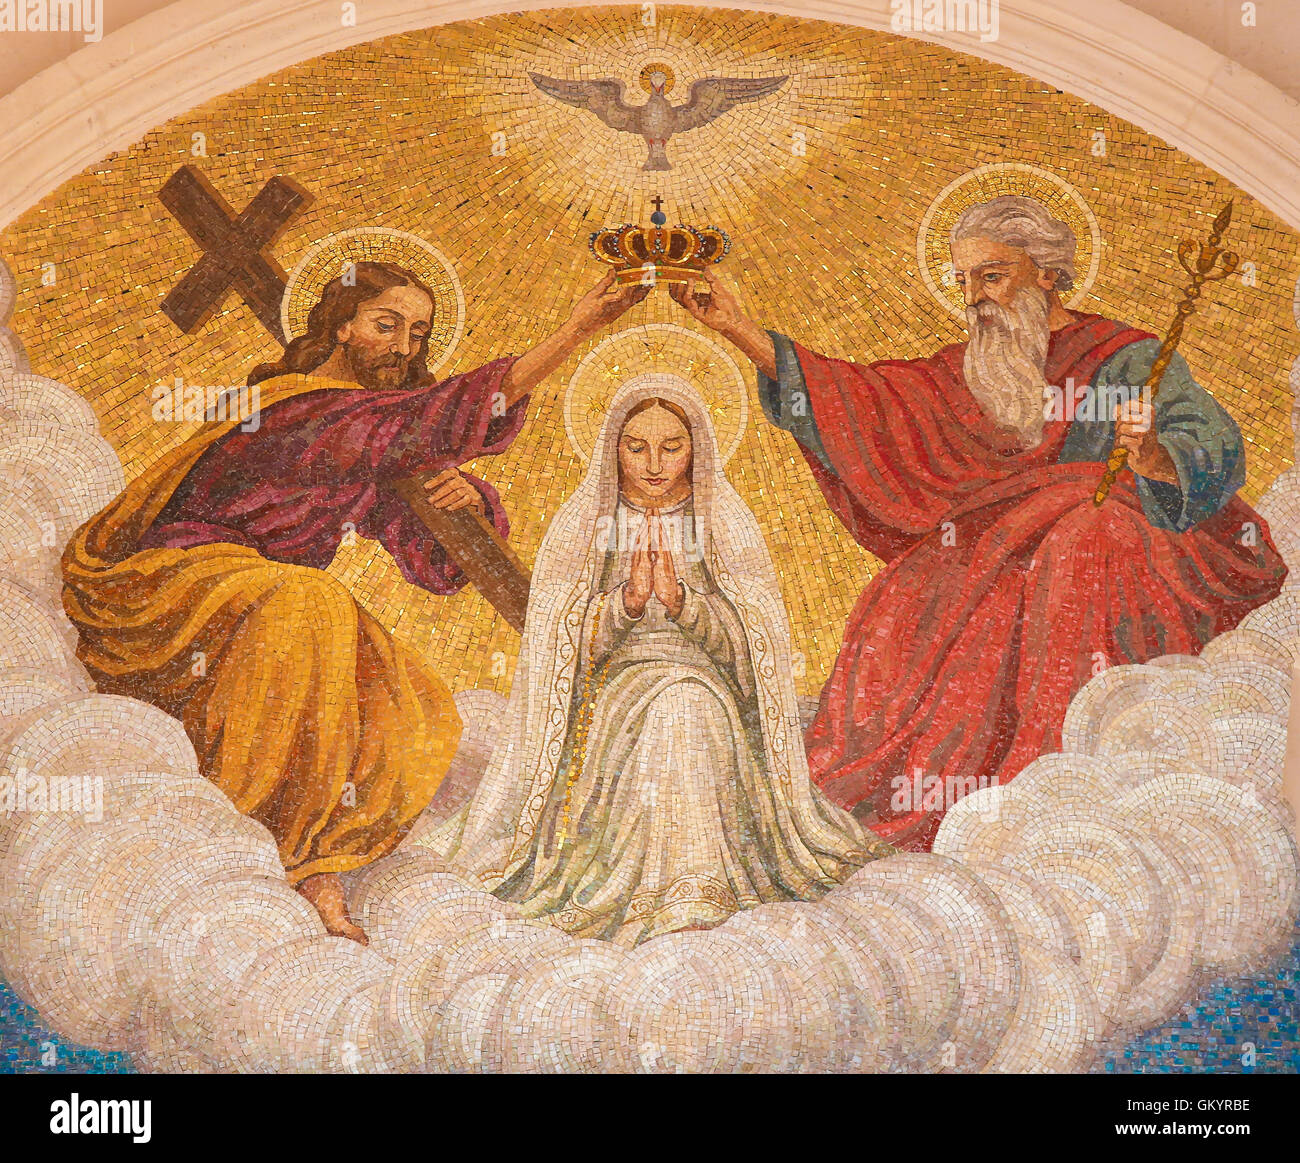 Painting Of The Coronation Of Mother Mary By The Holy